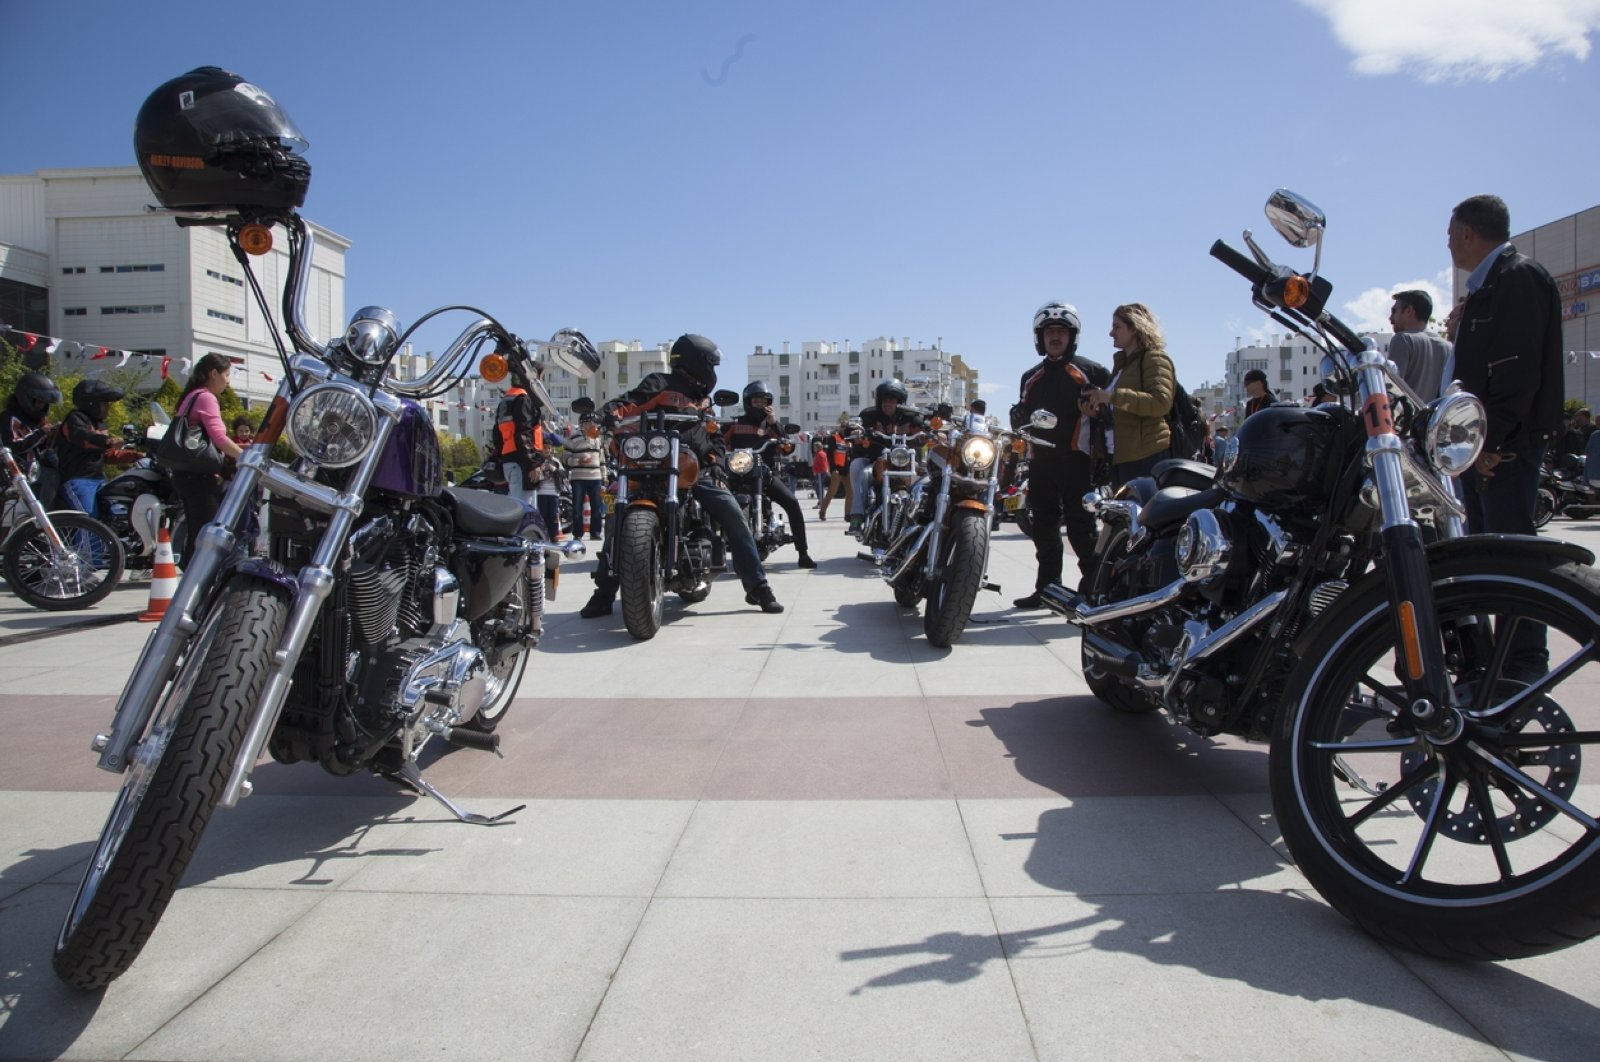 Motorcycles in aHarley Davidson convoy heading to a rally in Antalya are seen on the road, southern Antalya, Turkey, May 21, 2017. (iStock Photo by Onur Hazar Altındağ)